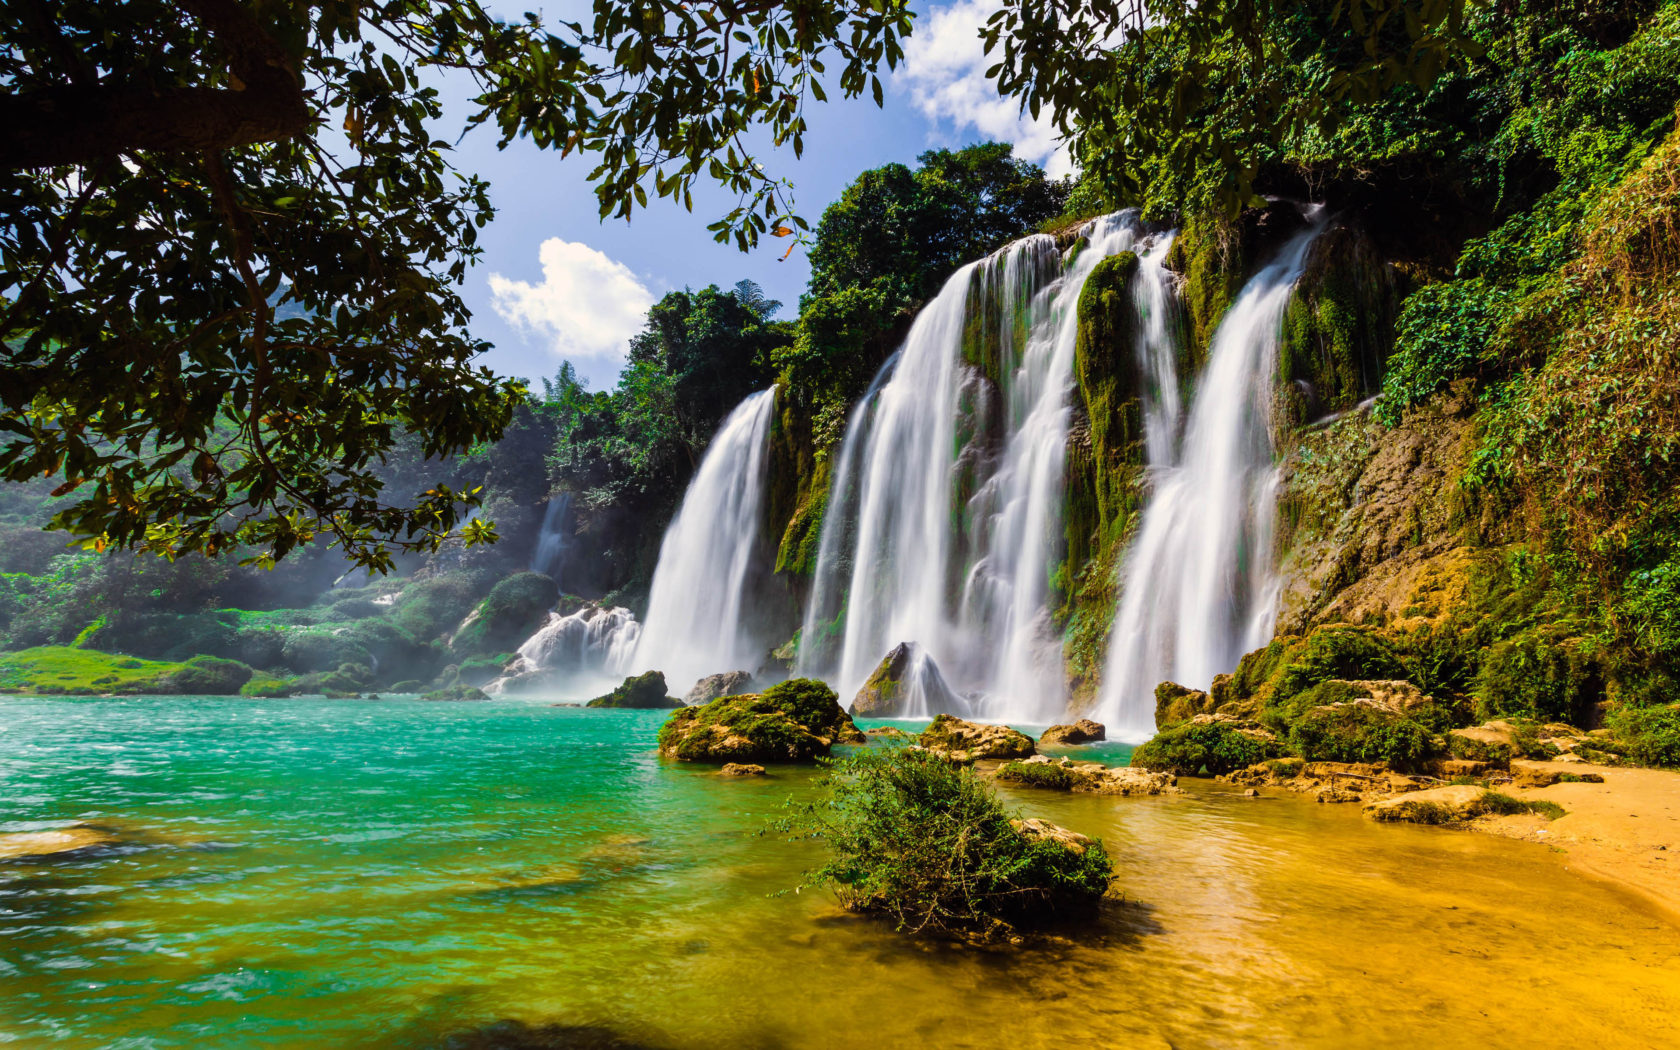 Iphone Wallpapers Hd Free Download Ban Gioc Waterfall In China And Vietnam 4k Wallpapers Hd